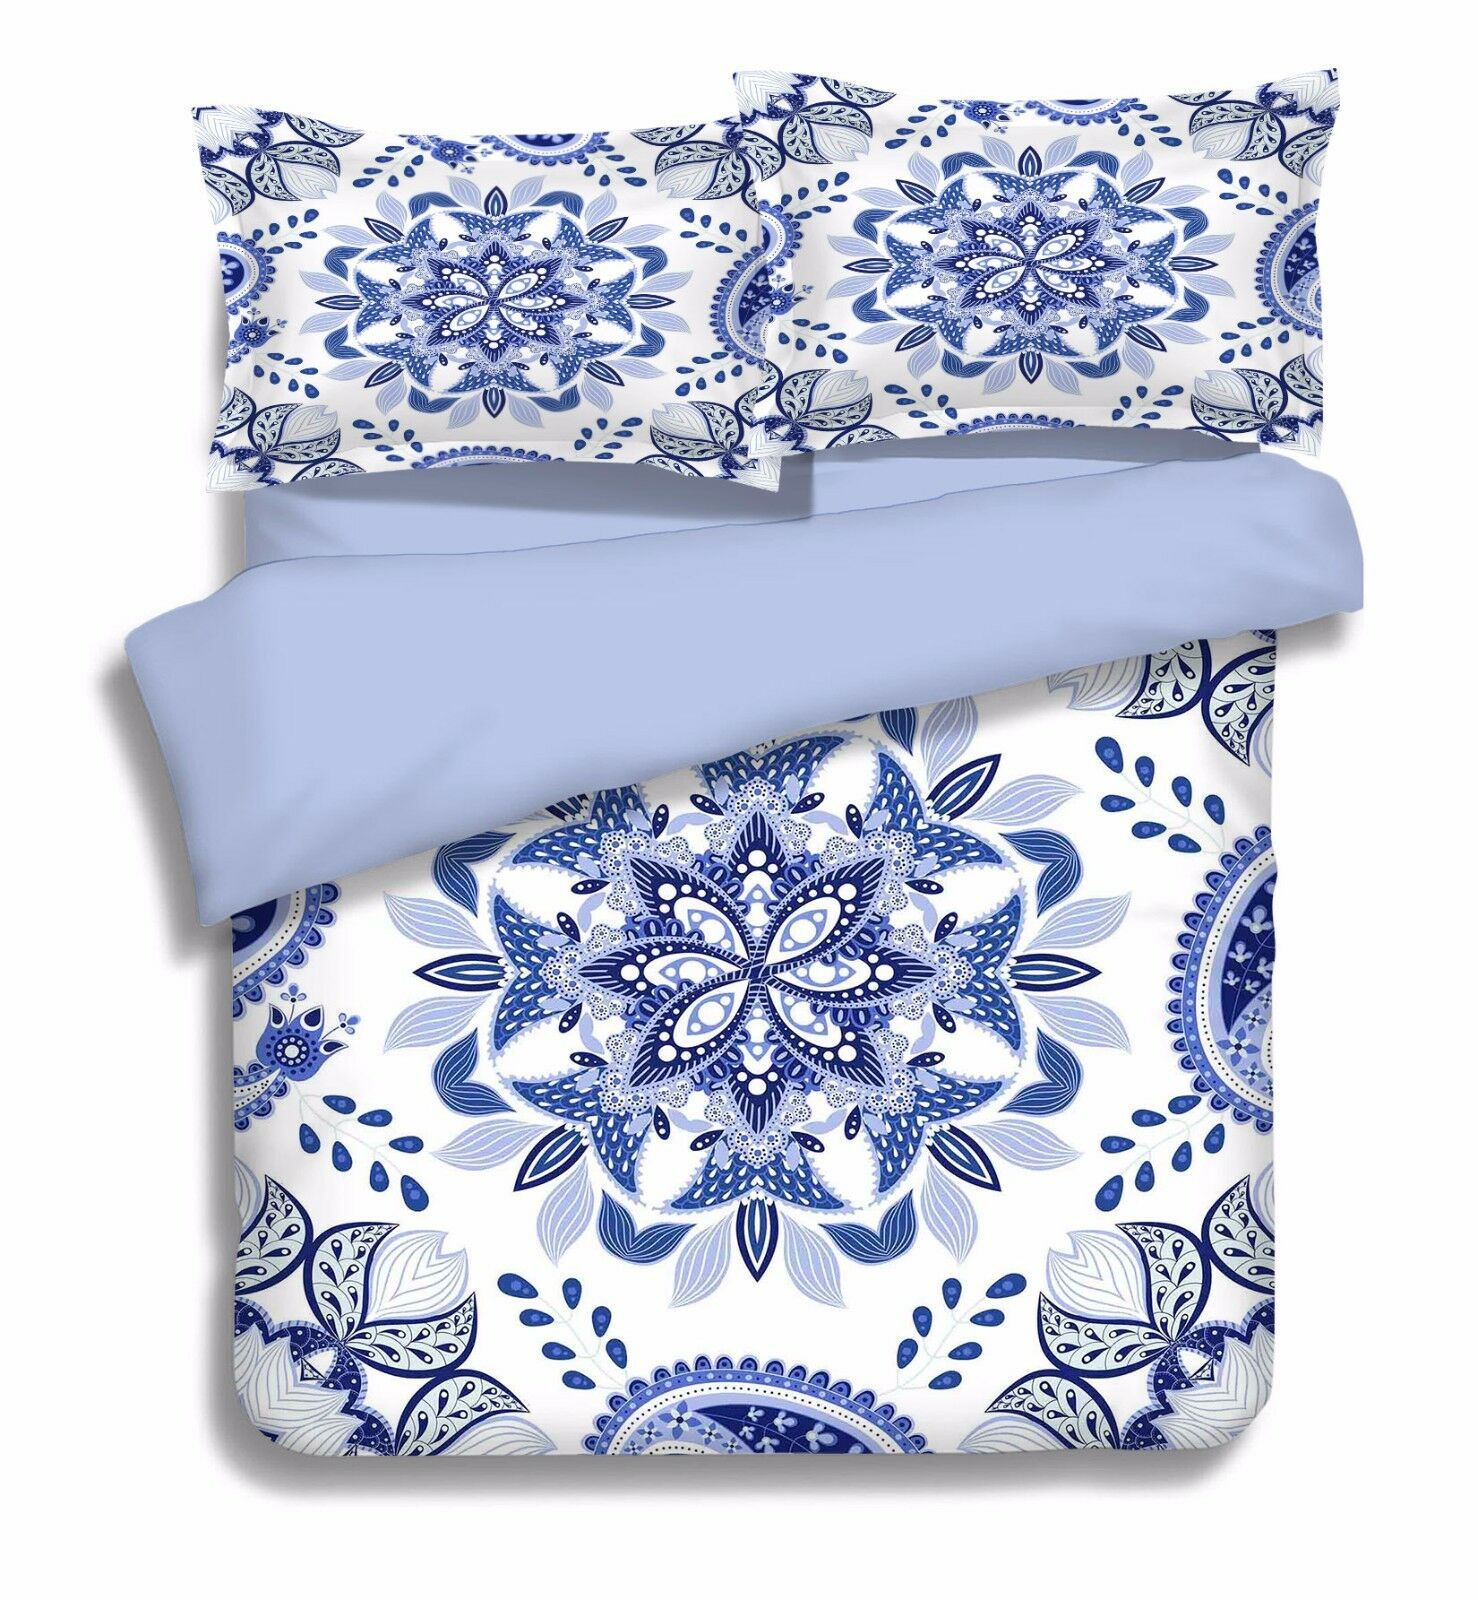 3D Bule Petals 756 Bed Pillowcases Quilt Duvet Cover Set Single Queen UK Carly